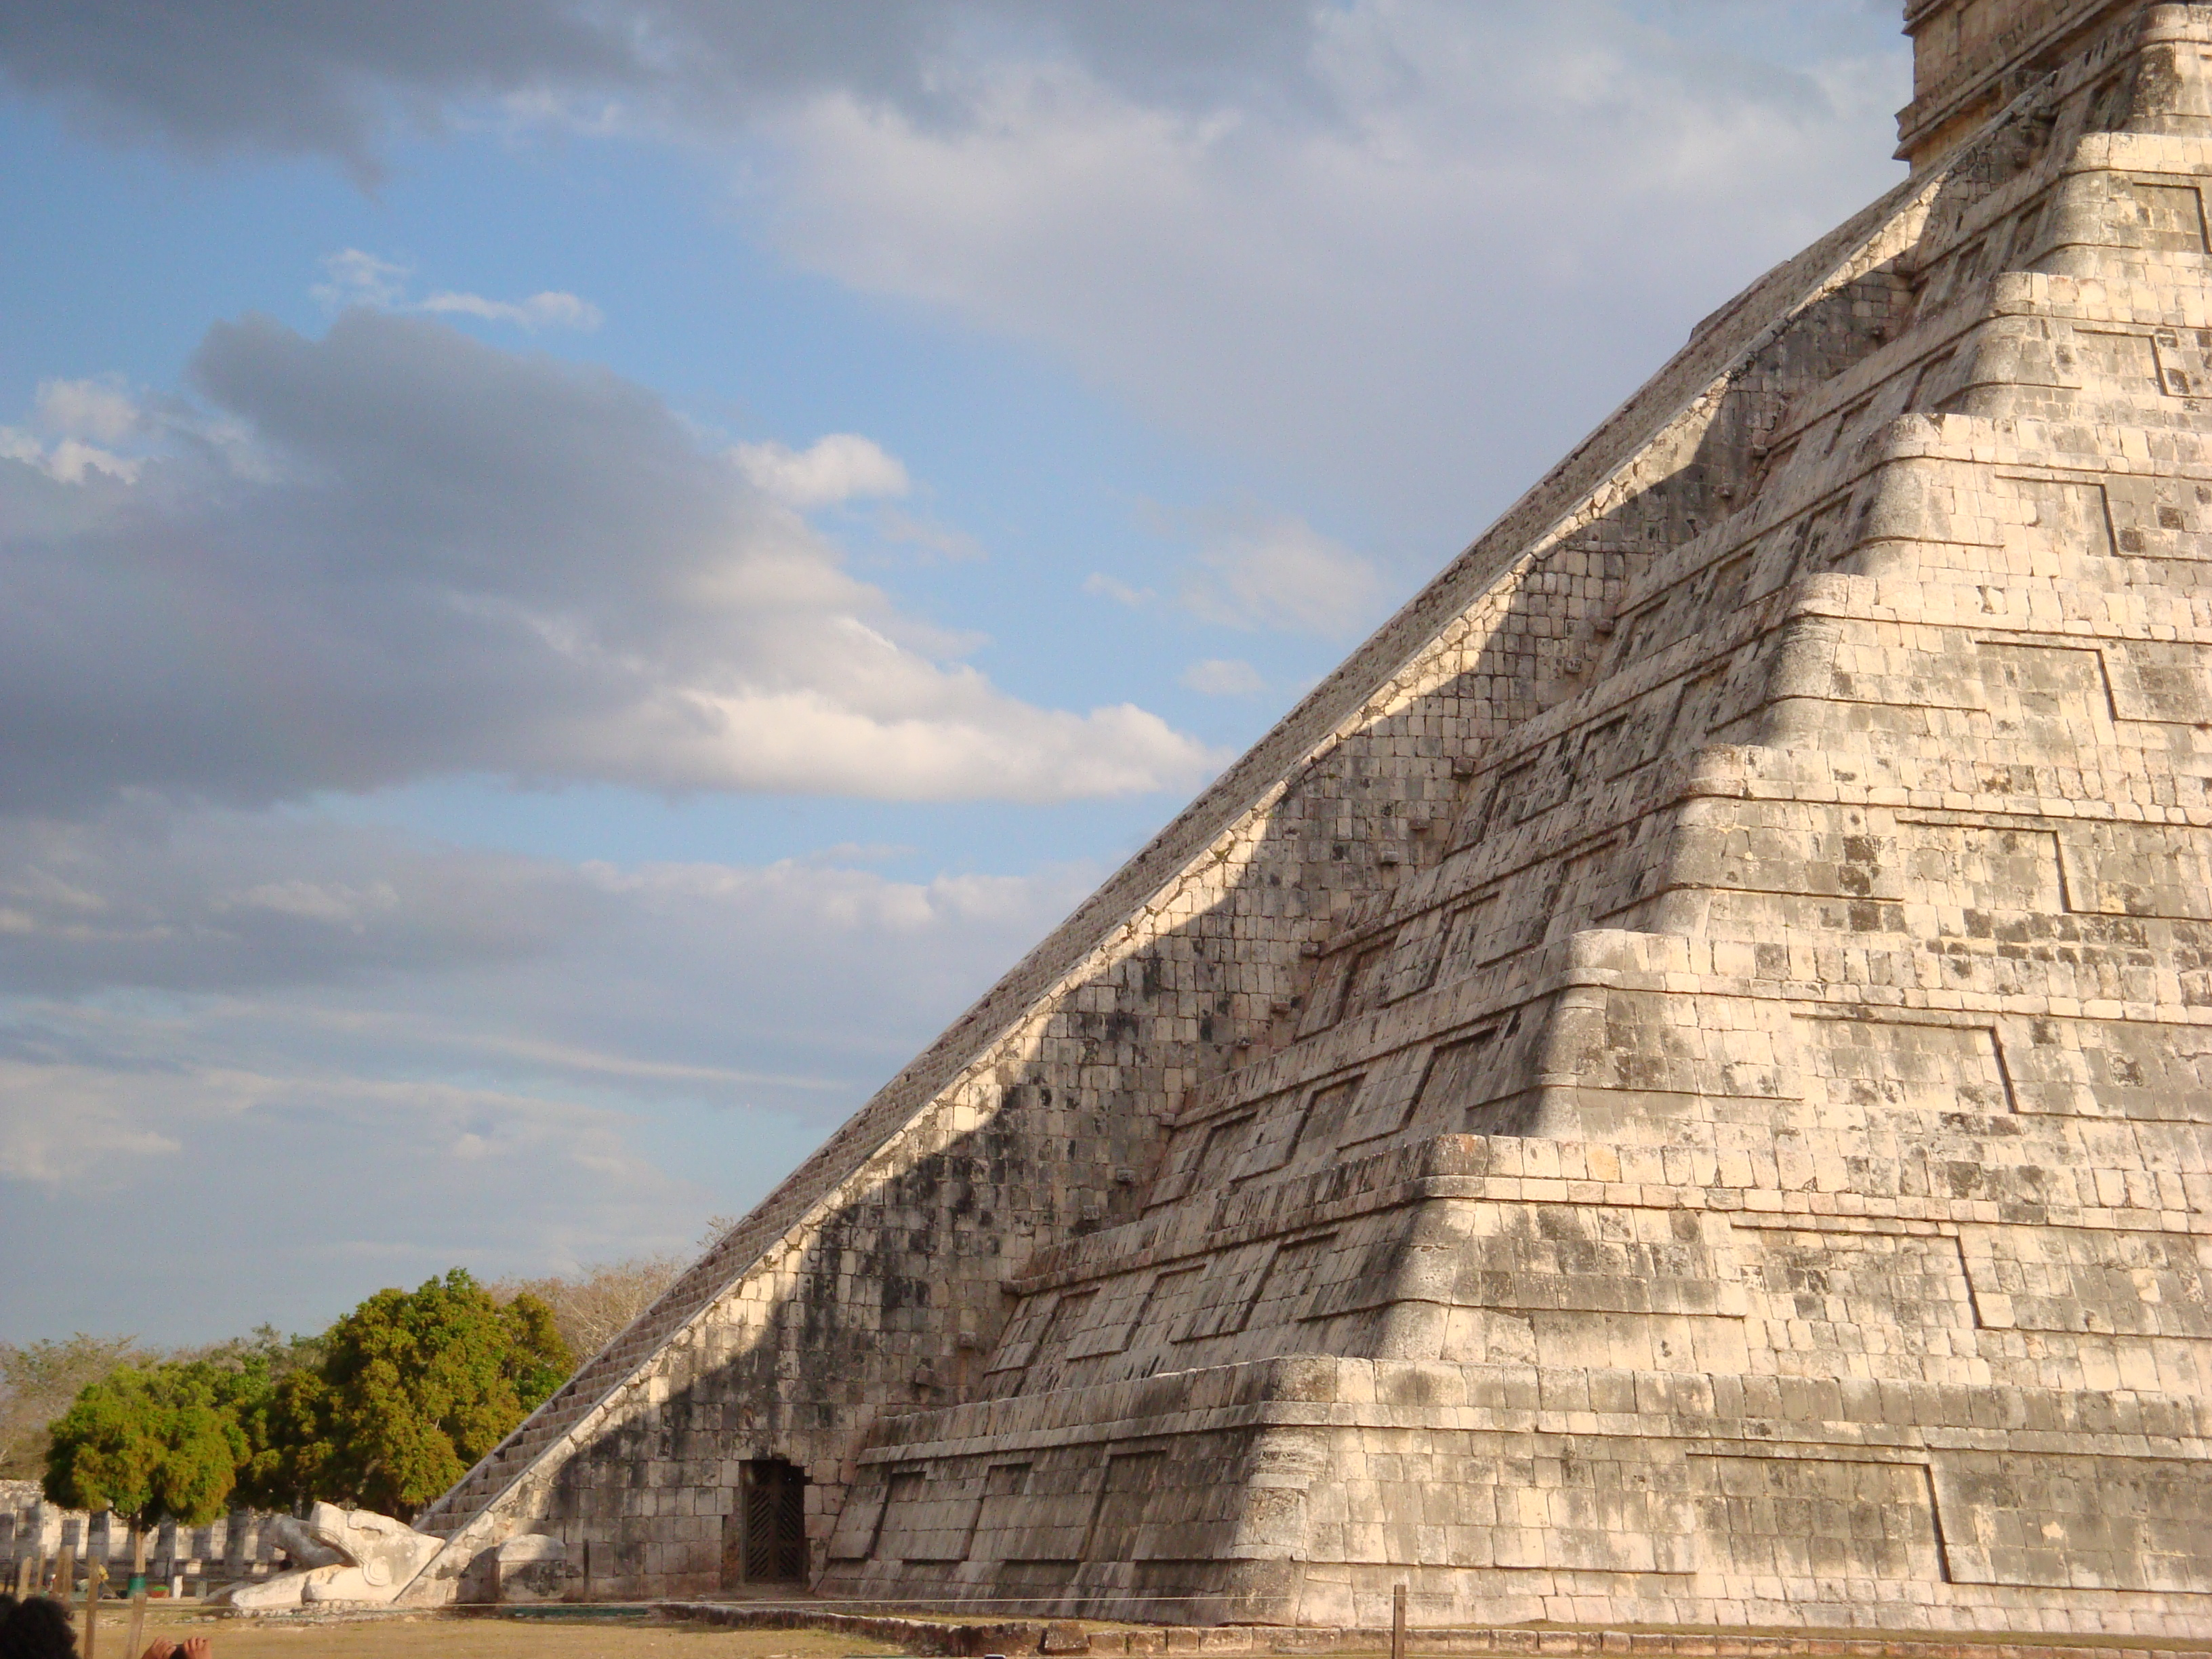 Kulkulkan serpent at Chichen Itza